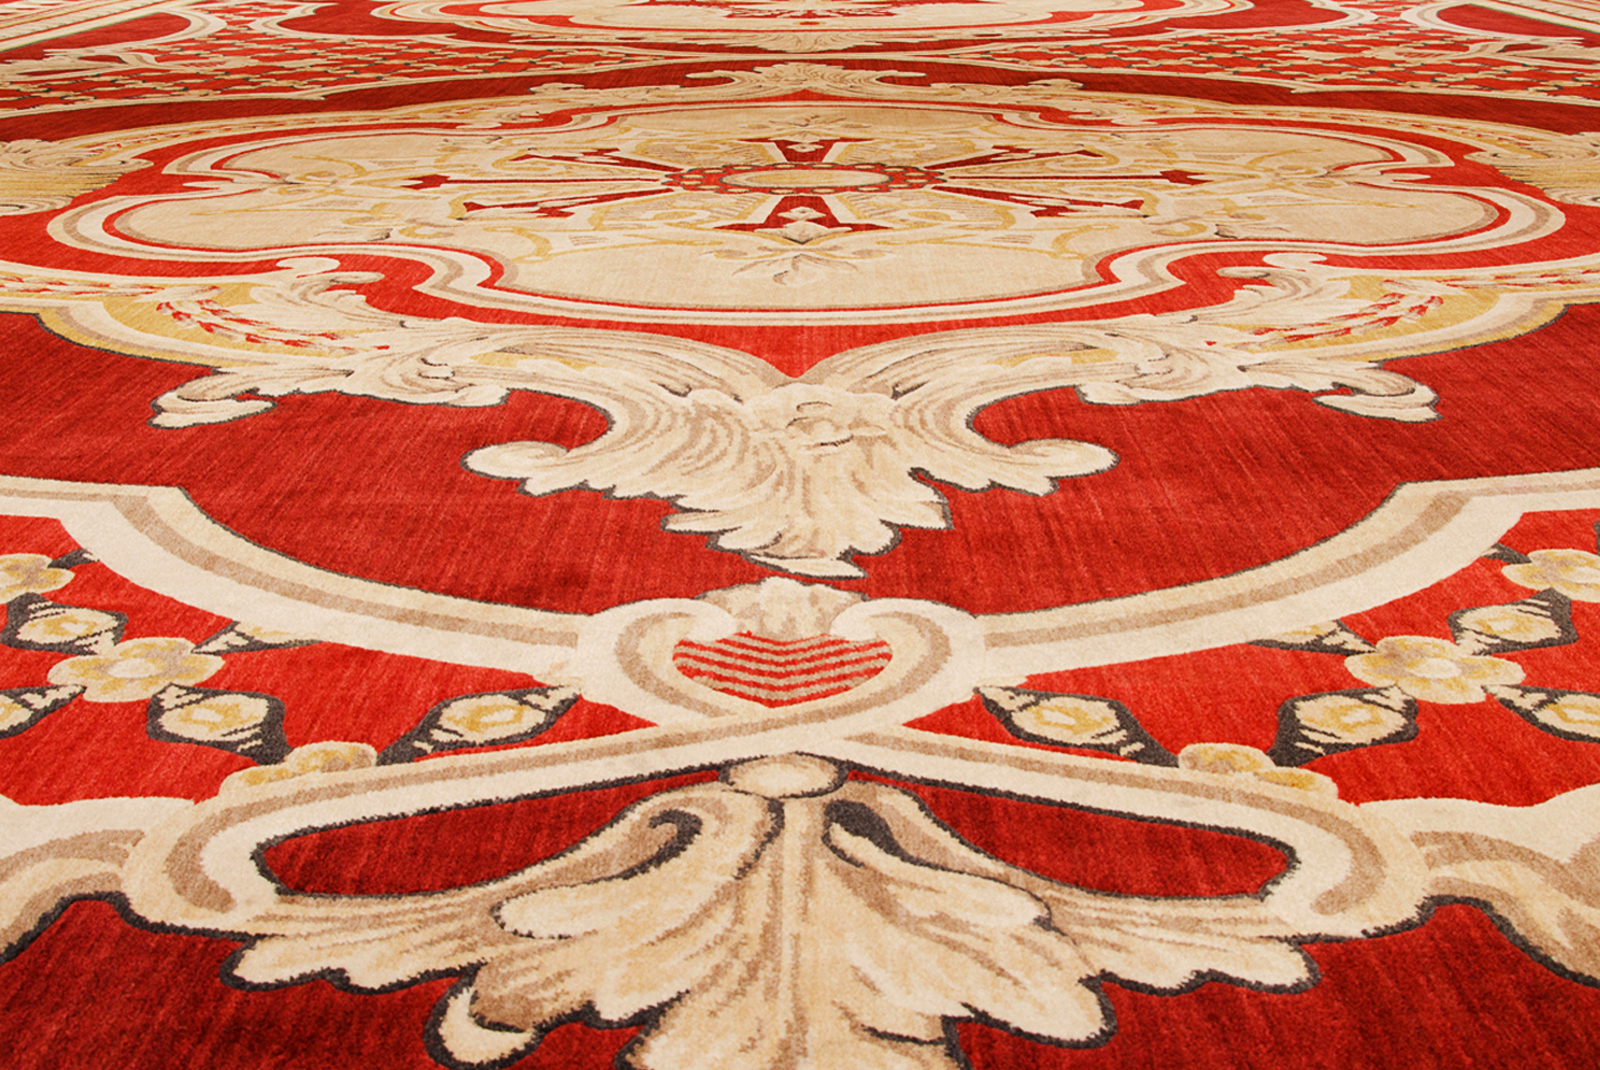 charming red nourison rugs with floral pattern for floor decor ideas